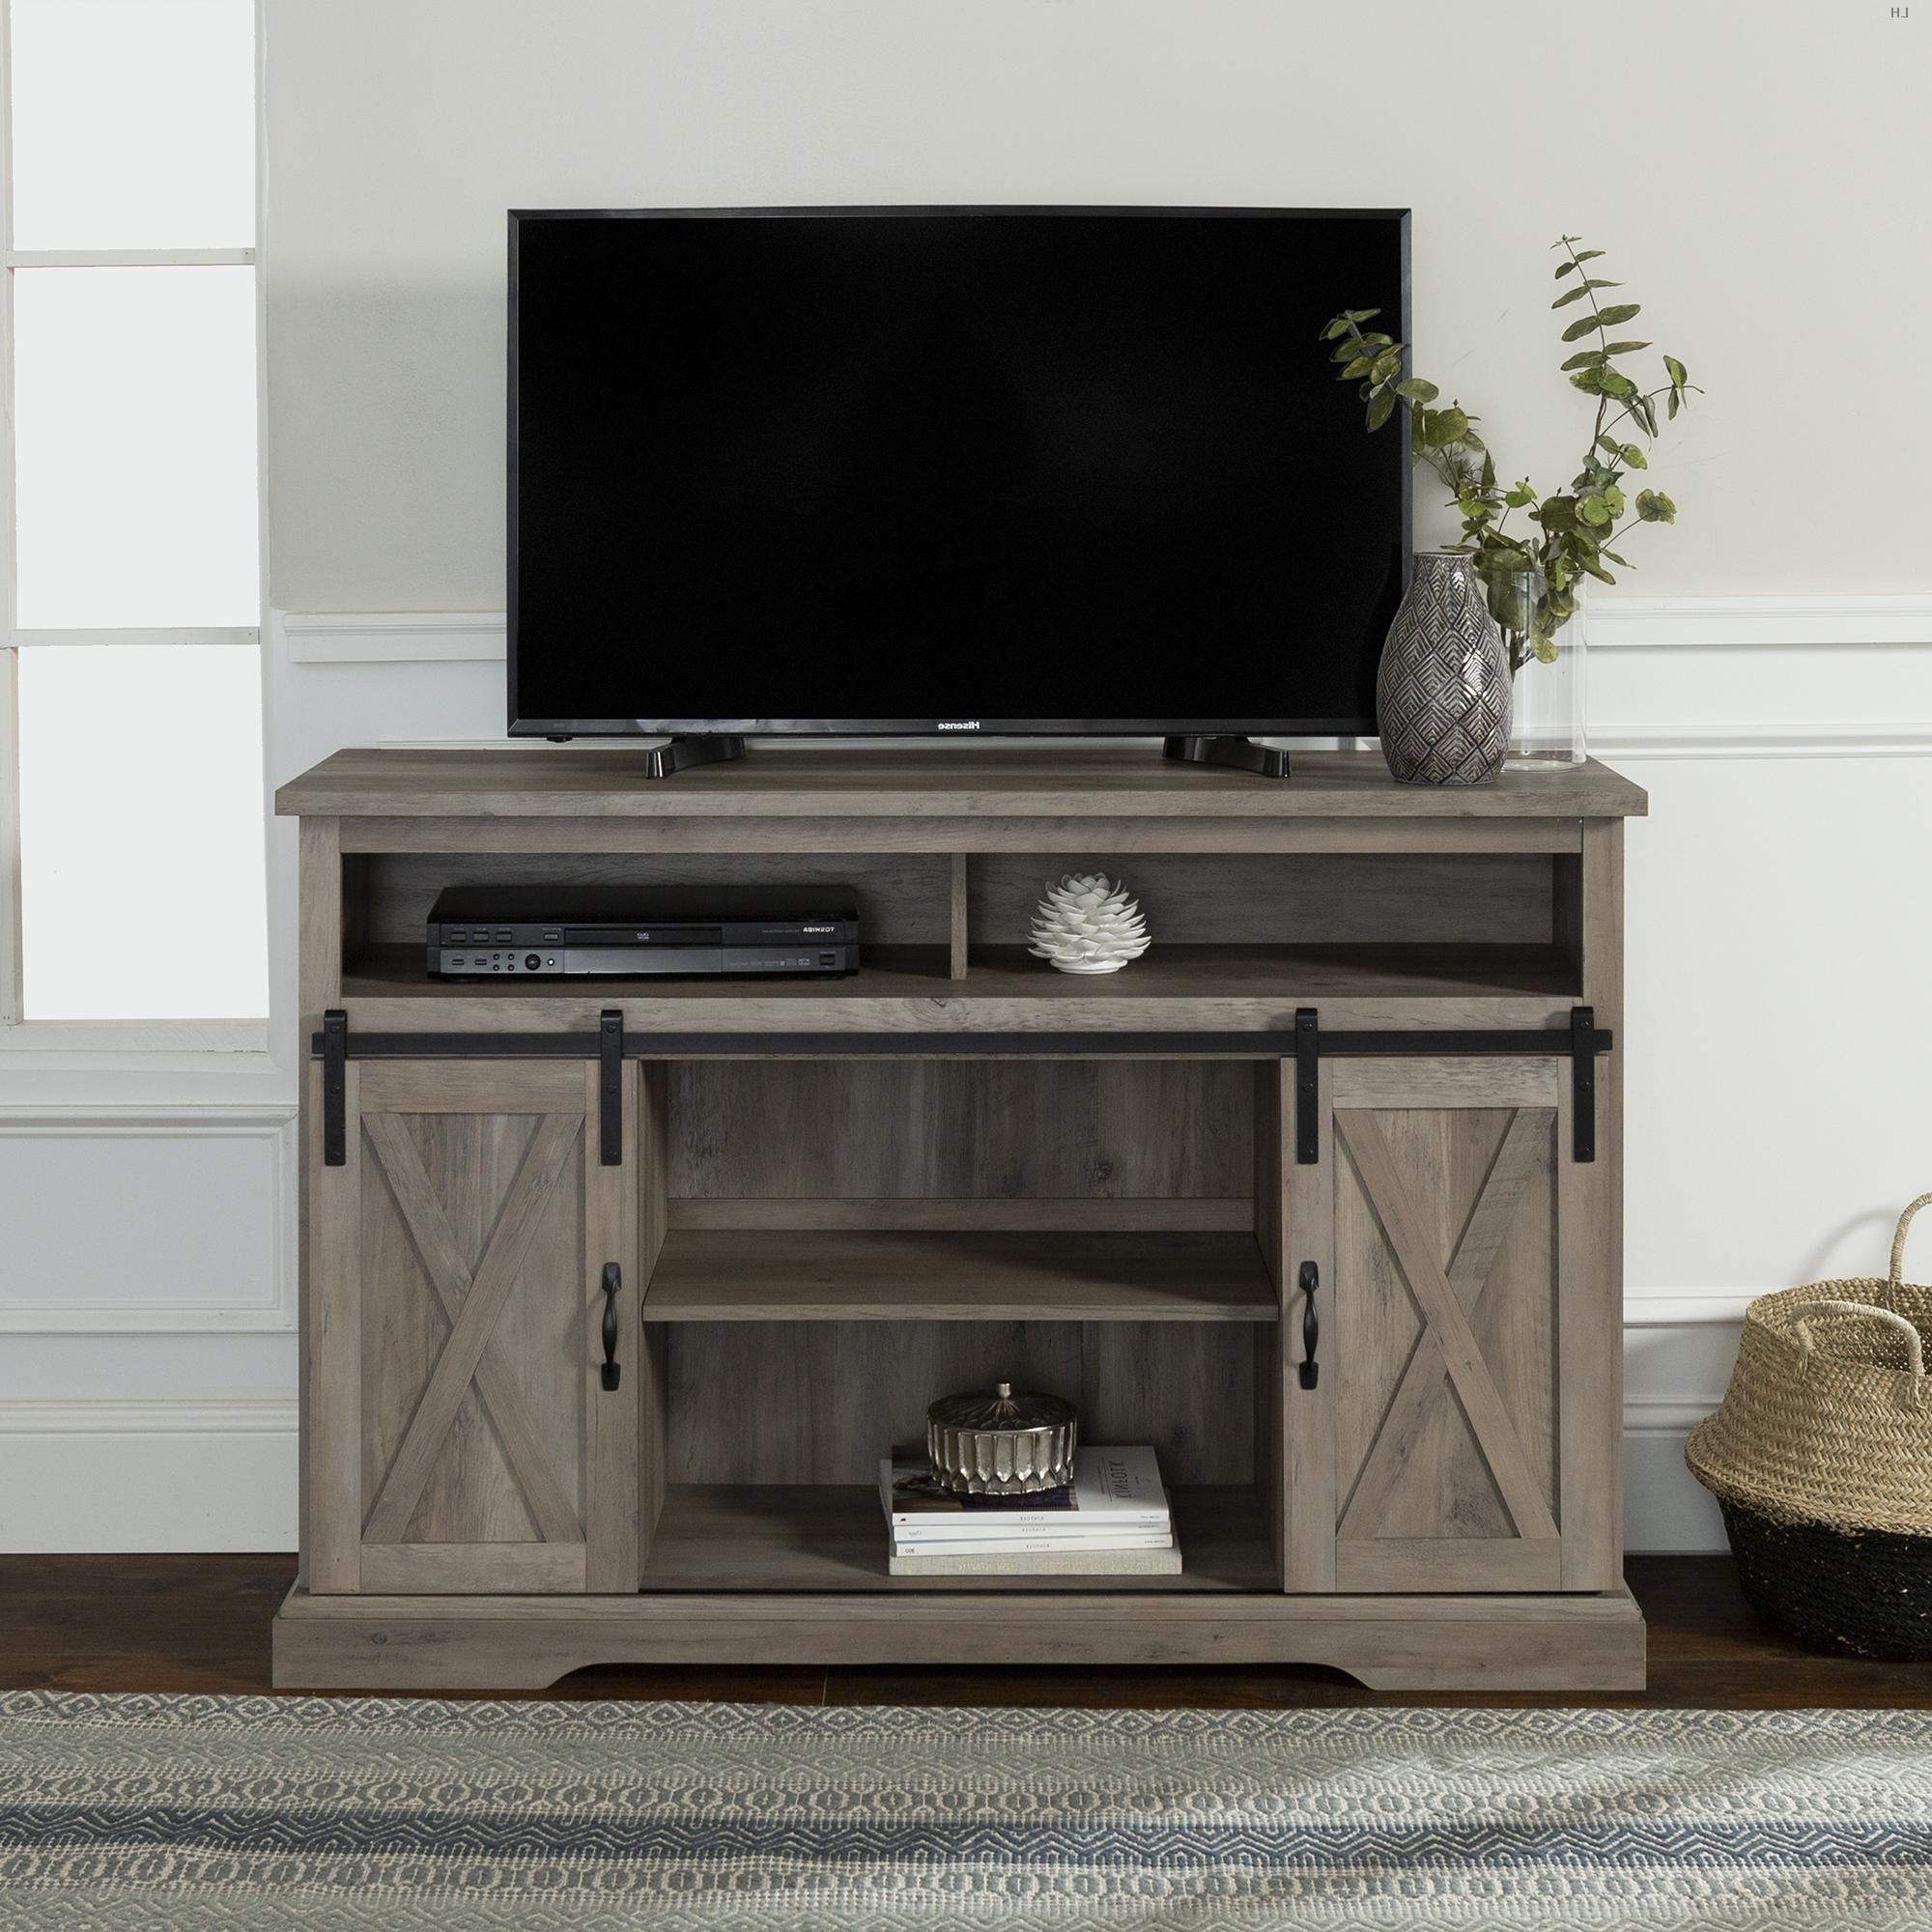 """Well Liked Farmhouse Barn Door Tv Stand For Tvs Up To 58""""manor For Kamari Tv Stands For Tvs Up To 58"""" (View 7 of 25)"""